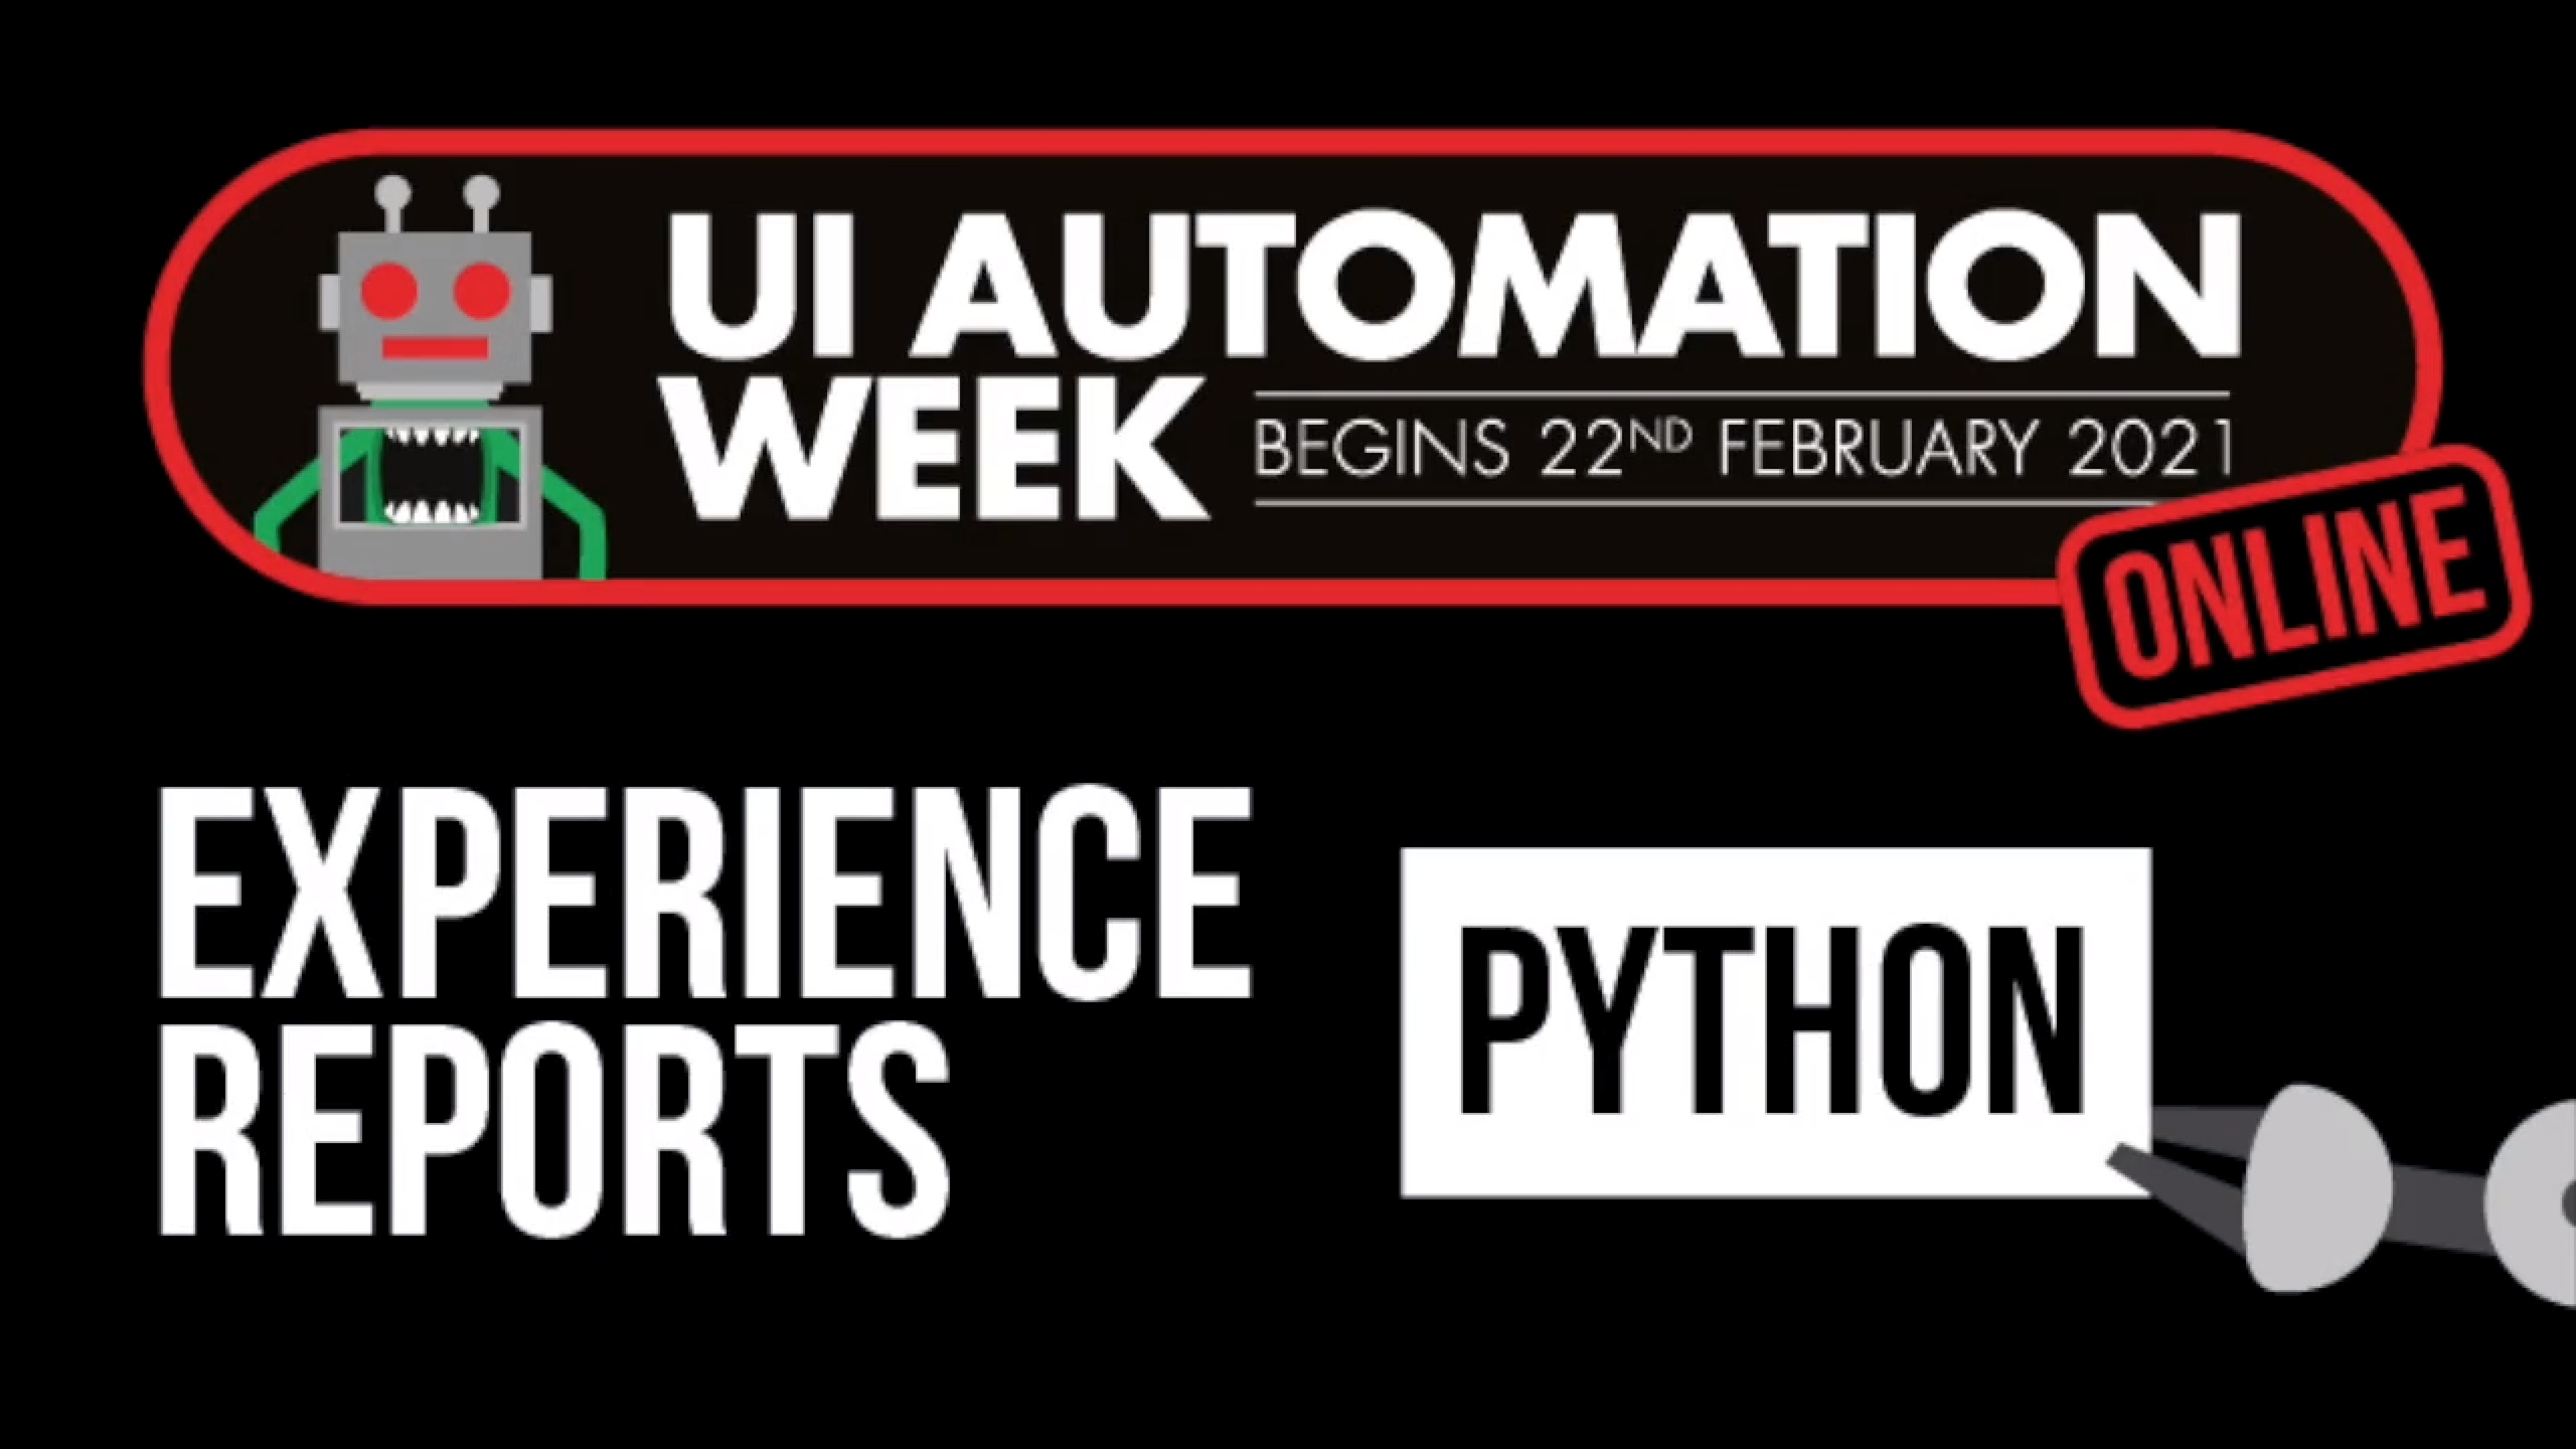 Experience Reports - Python Edition